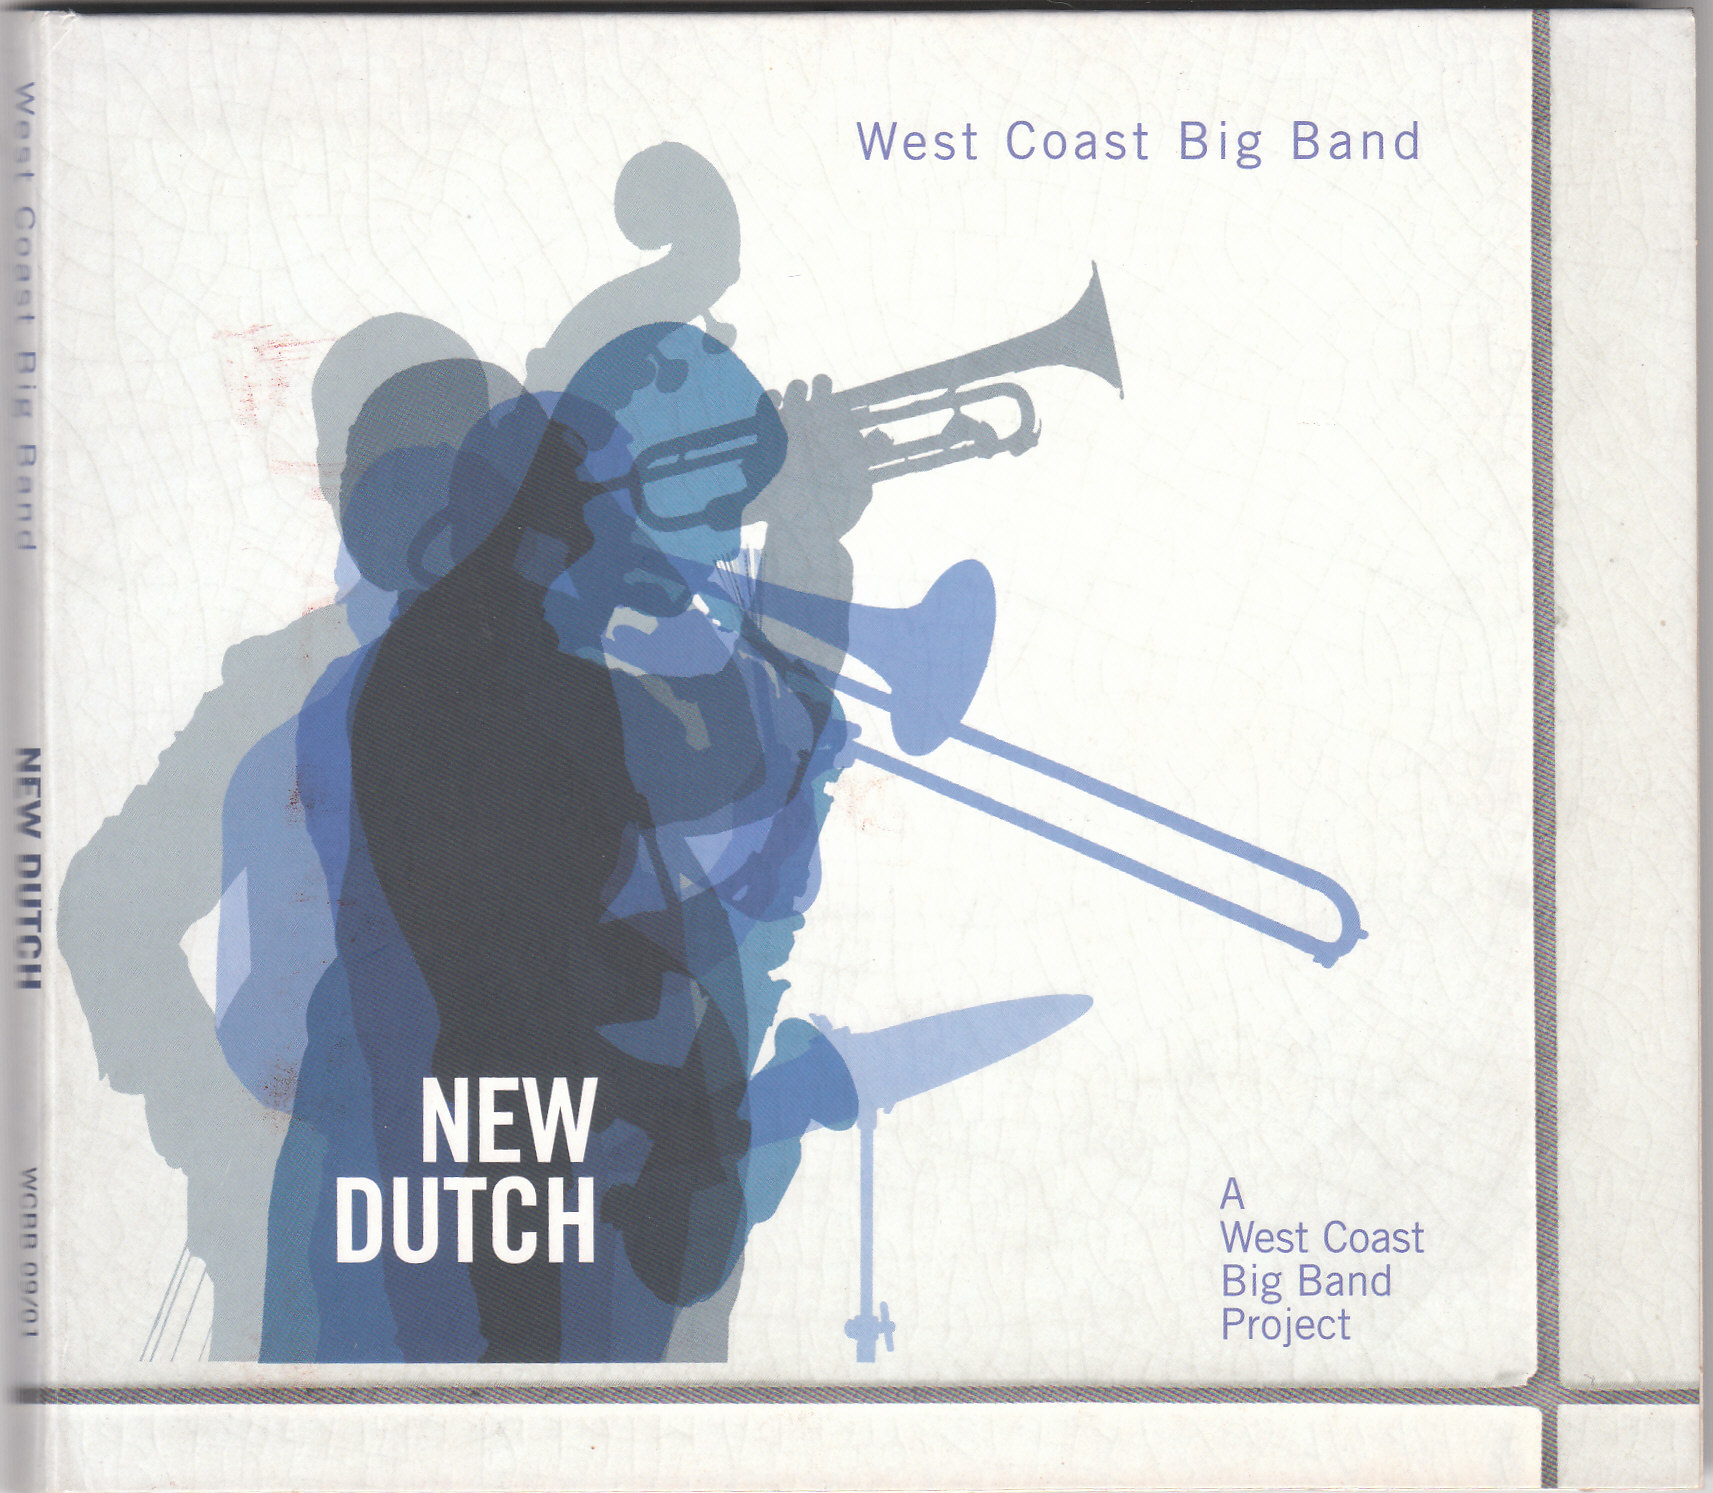 West Coast Big Band_0001.jpg